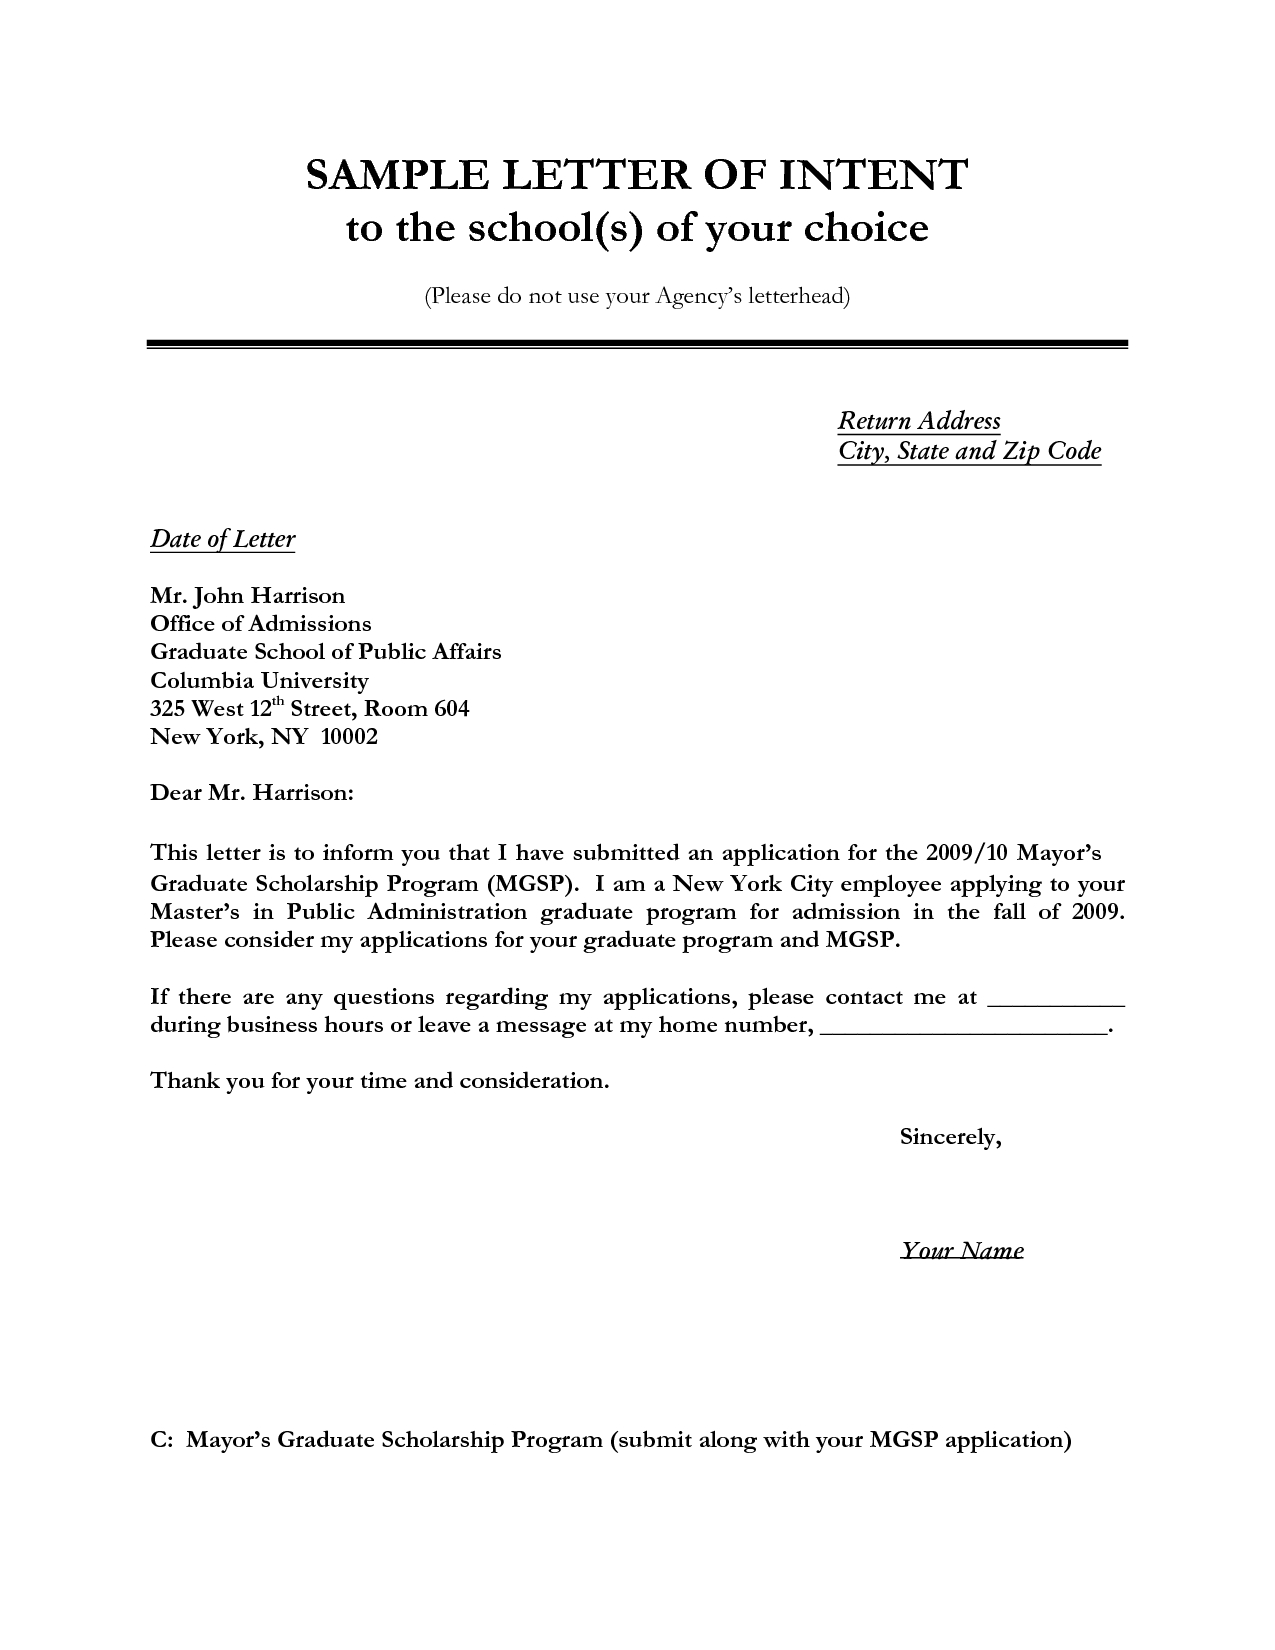 Real Estate Introduction Letter Template - Letter Of Intent Sample